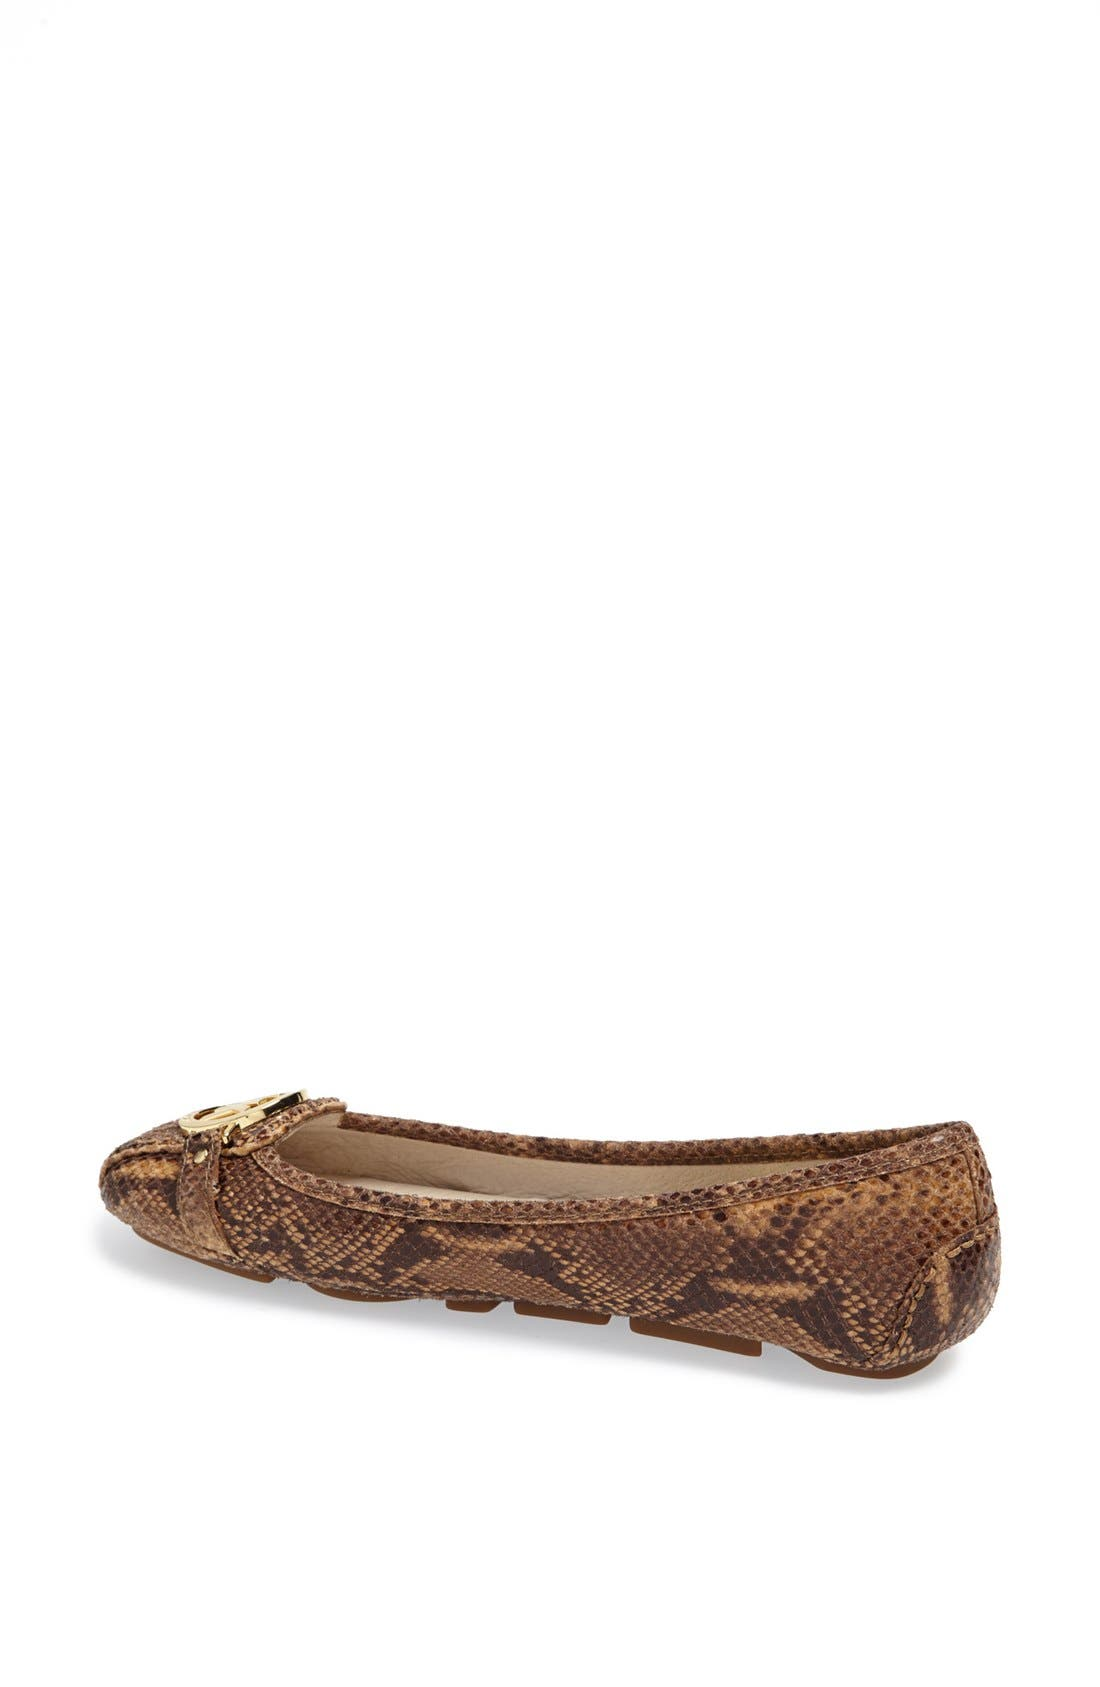 Alternate Image 2  - MICHAEL Michael Kors 'Fulton' Moccasin (Women)